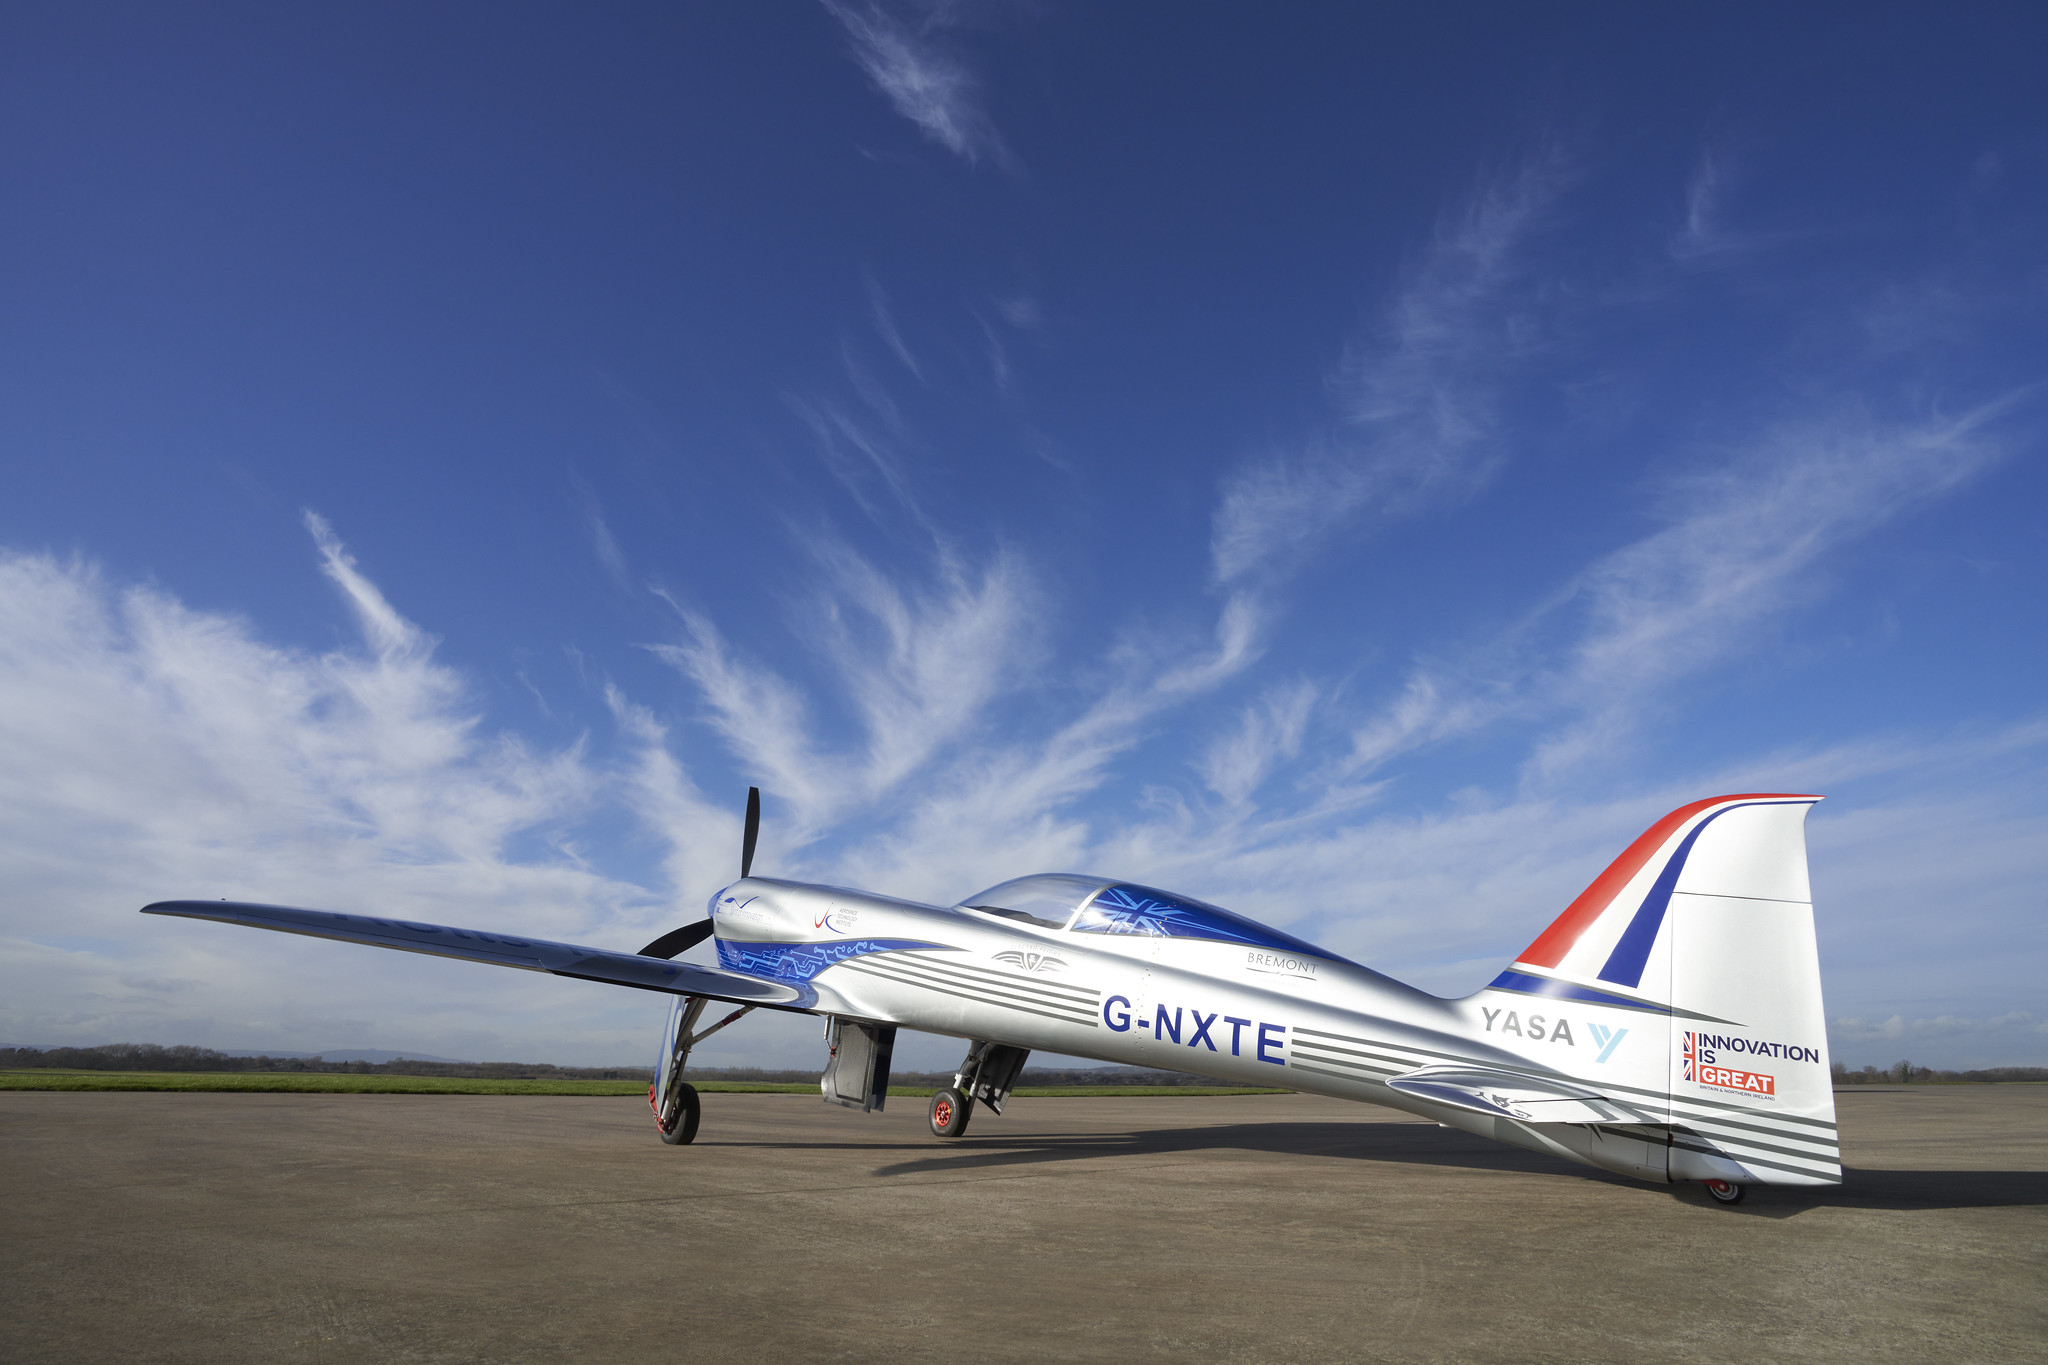 The first flight for the Spirit of Innovation is expected to take place this European springtime